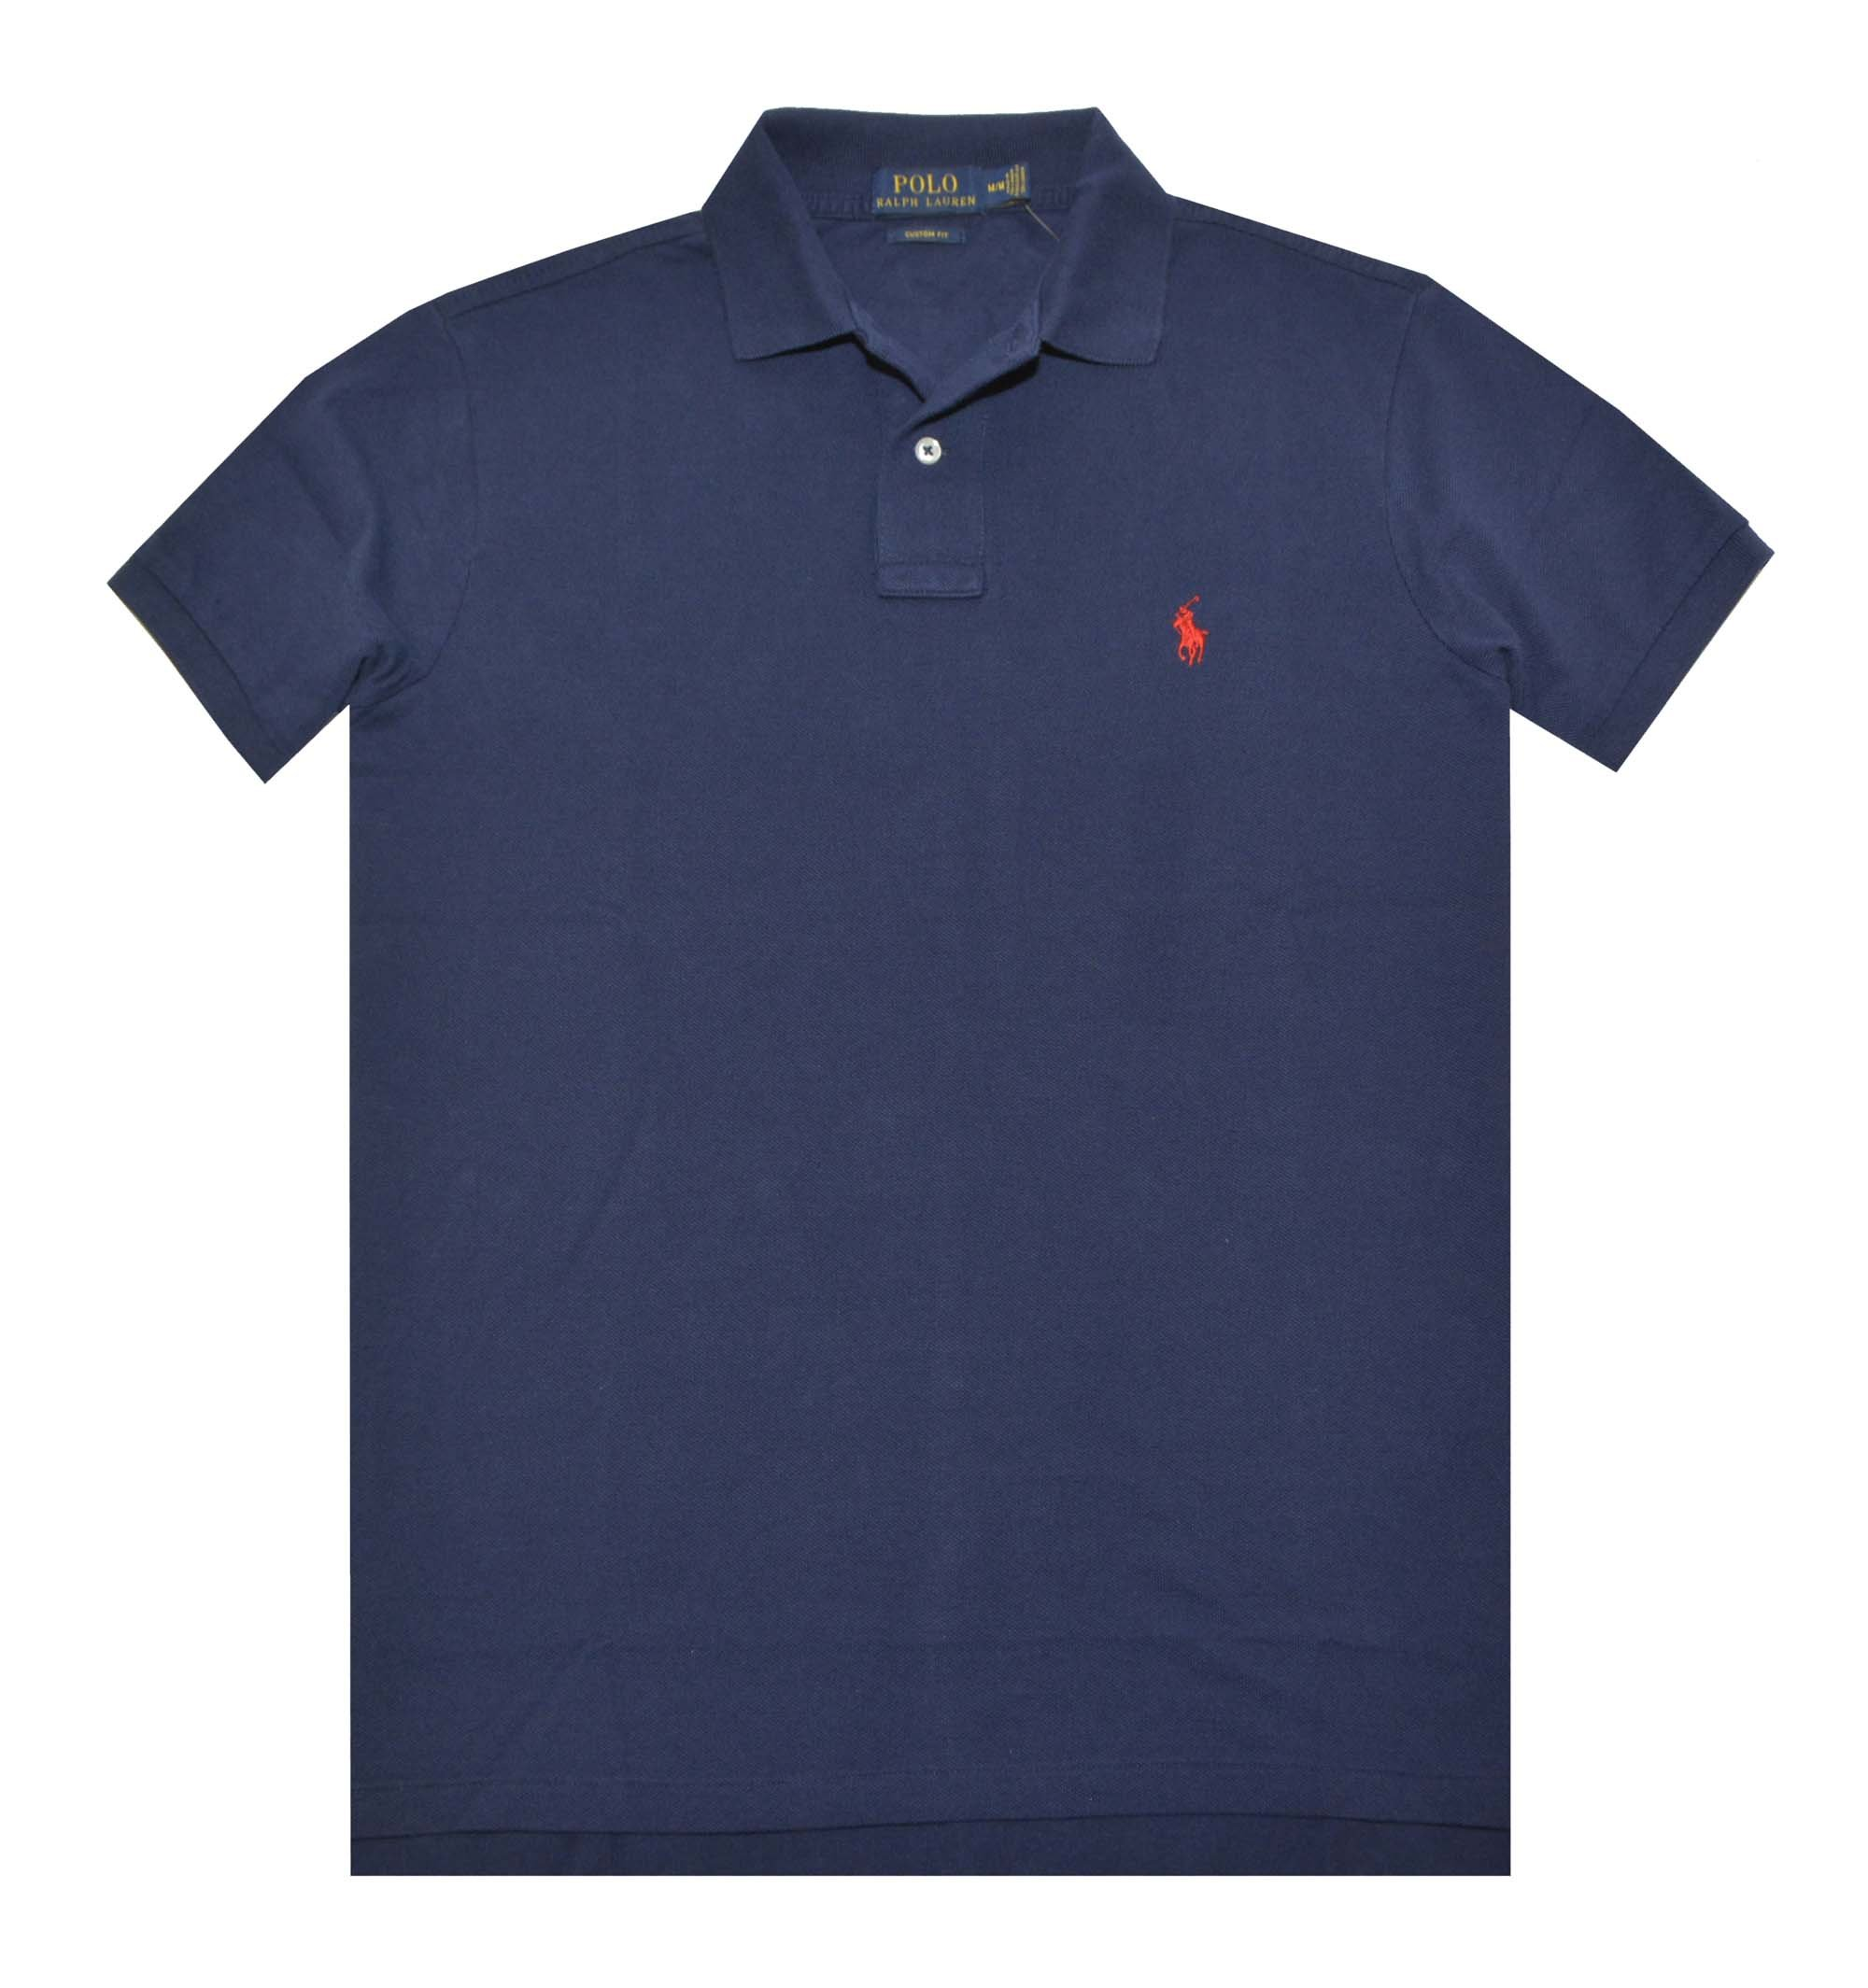 Polos Polo Ralph Lauren Classic Fit Mens Xl Heather Blue Cotton Mesh Polo Shirt For Fast Shipping Men's Clothing